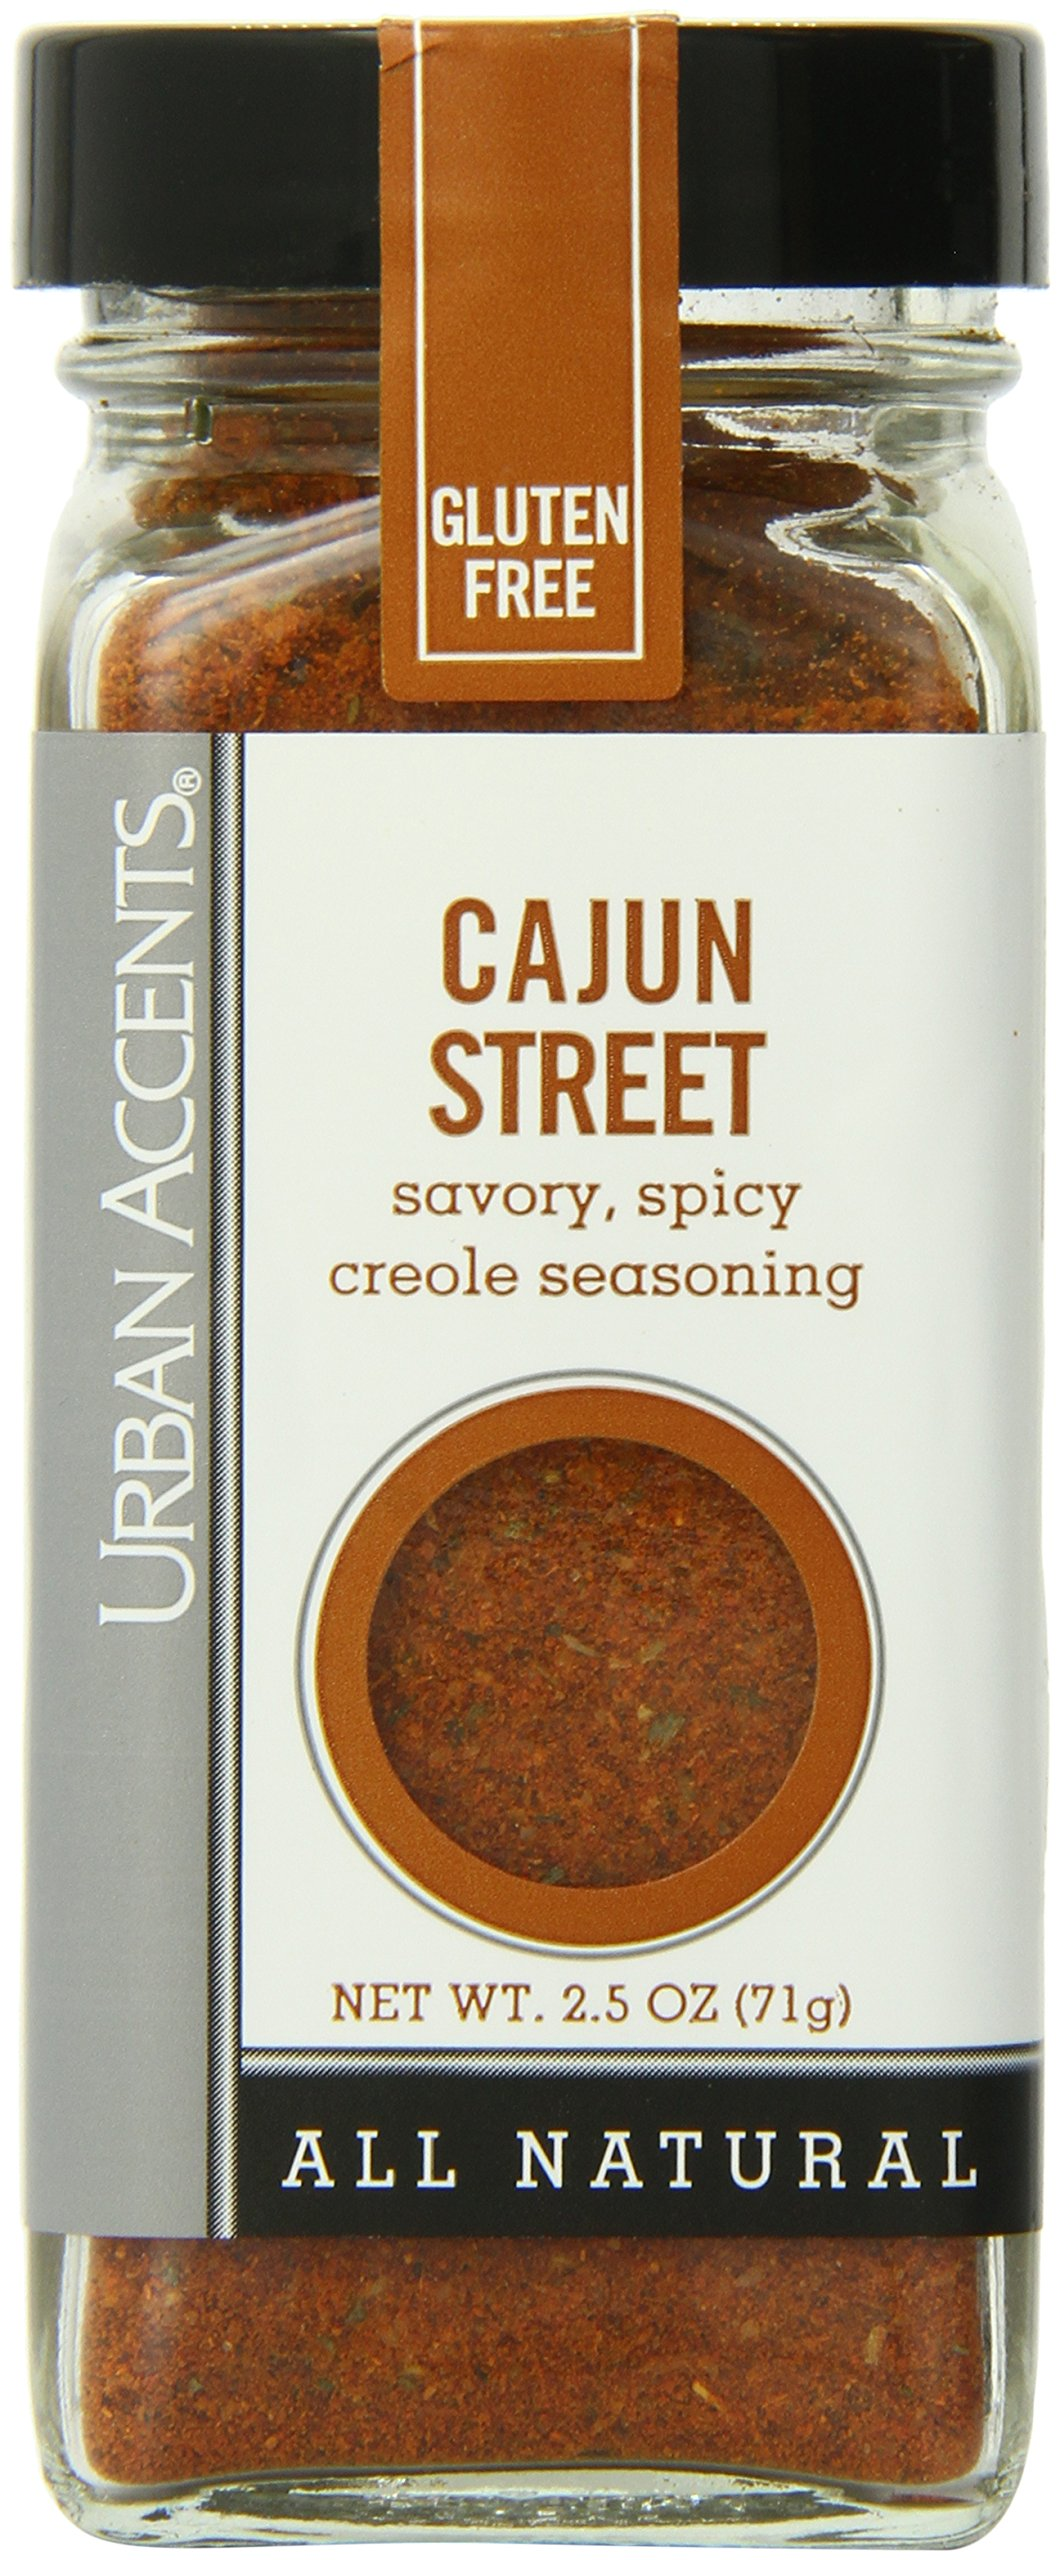 Urban Accents Cajun Street Cajun Seasoning Blend, 2.5-Ounce Bottles (Pack of 6)